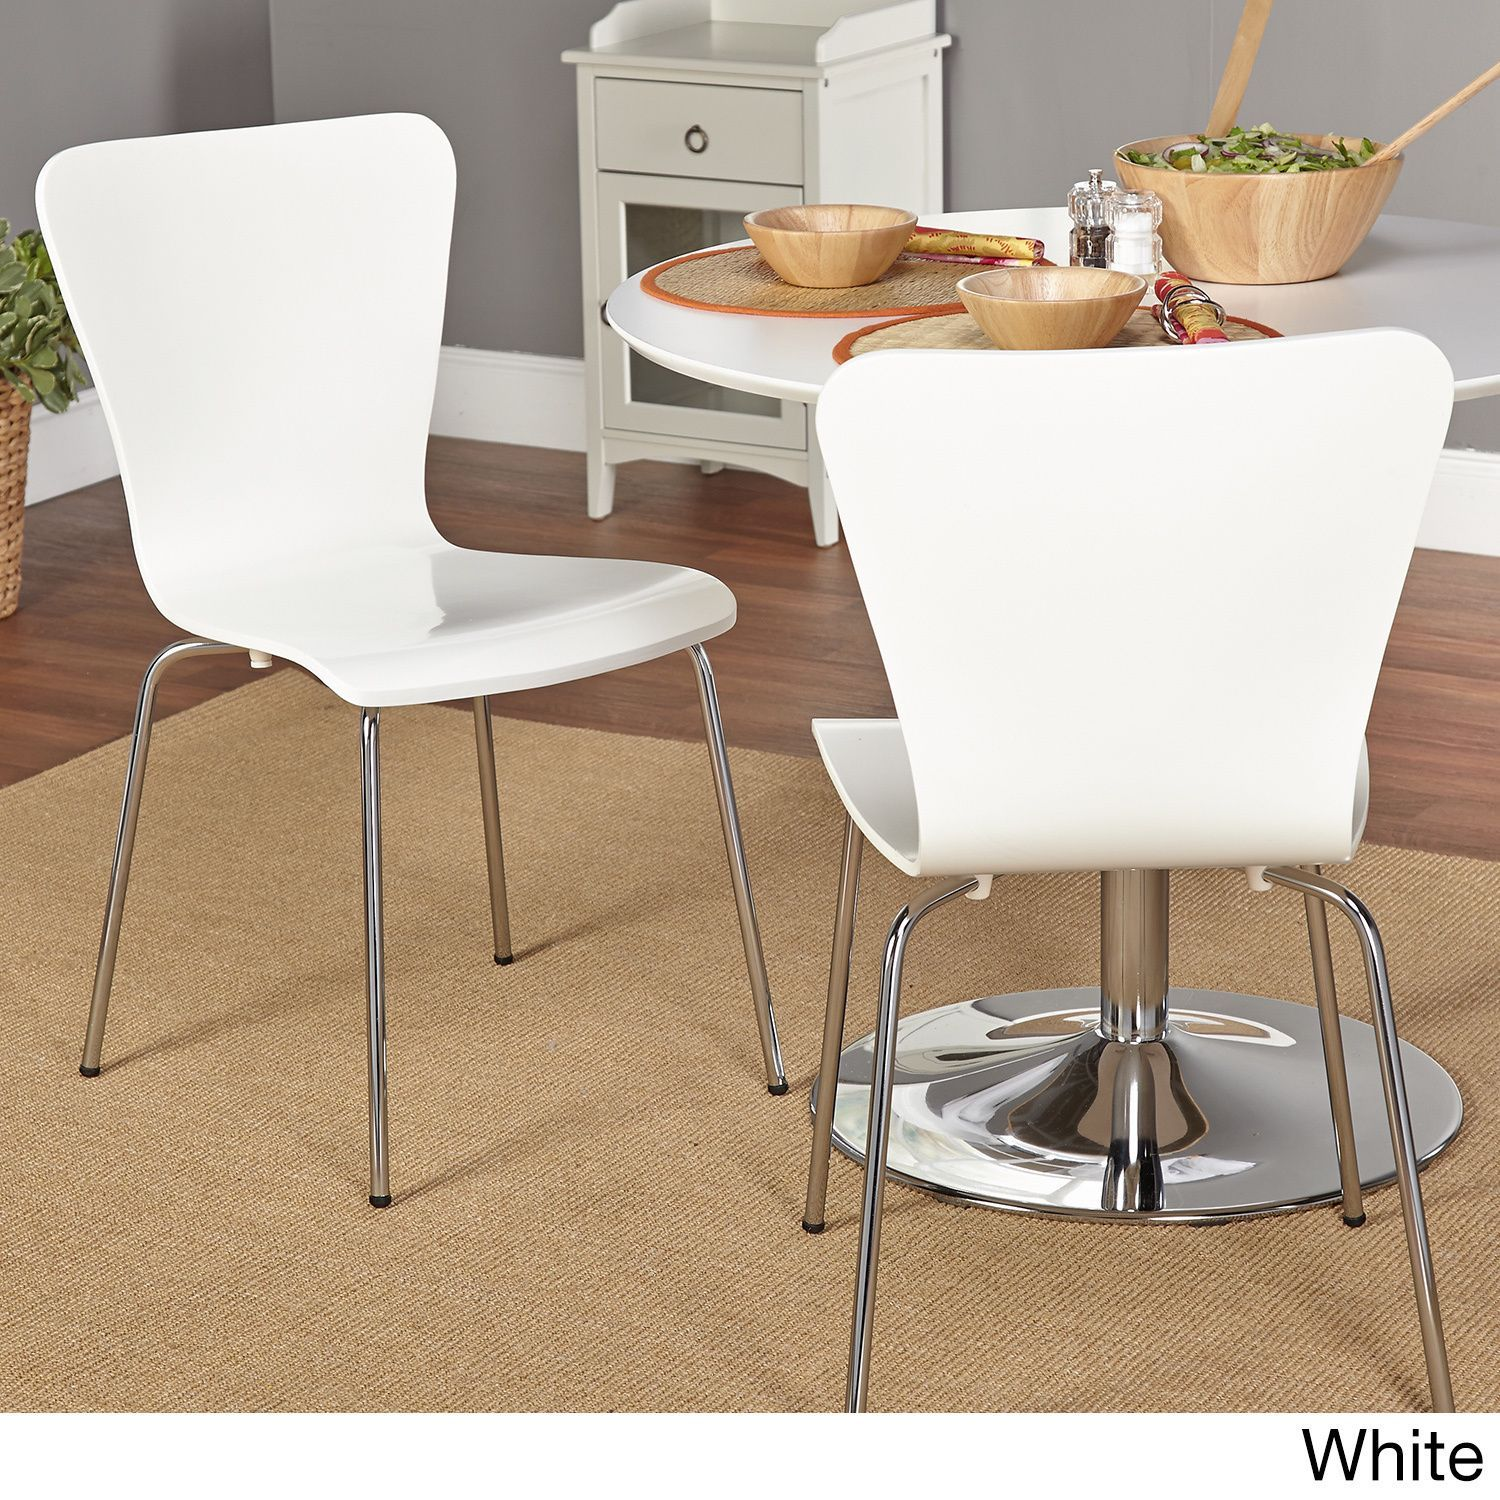 32 Stylish Dining Room Ideas To Impress Your Dinner Guests: This Retro Two Piece Chair Set Is Made From Bentwood And